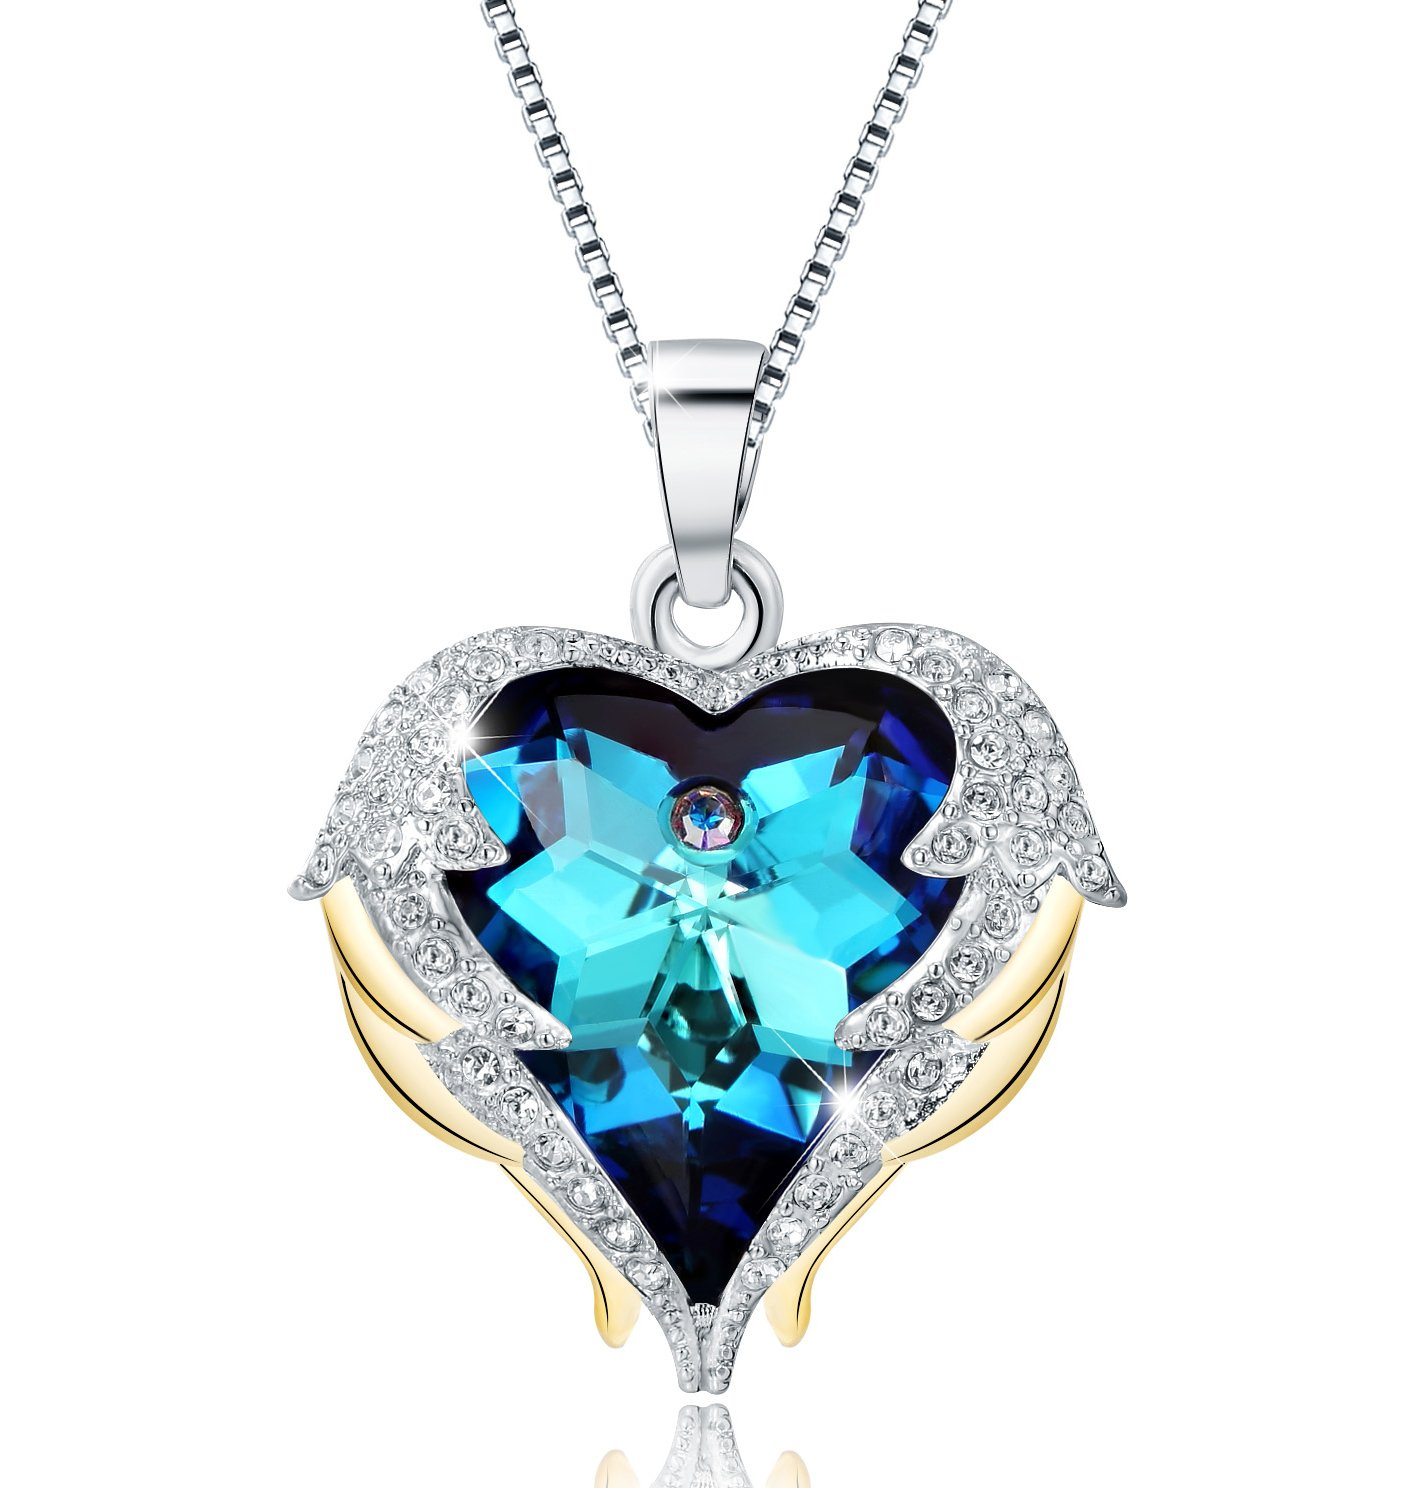 Mevecco Womens Fashion Necklace with Swarovski Crystal Heart Pendant Necklace Jewelry-NK10-Blue Light